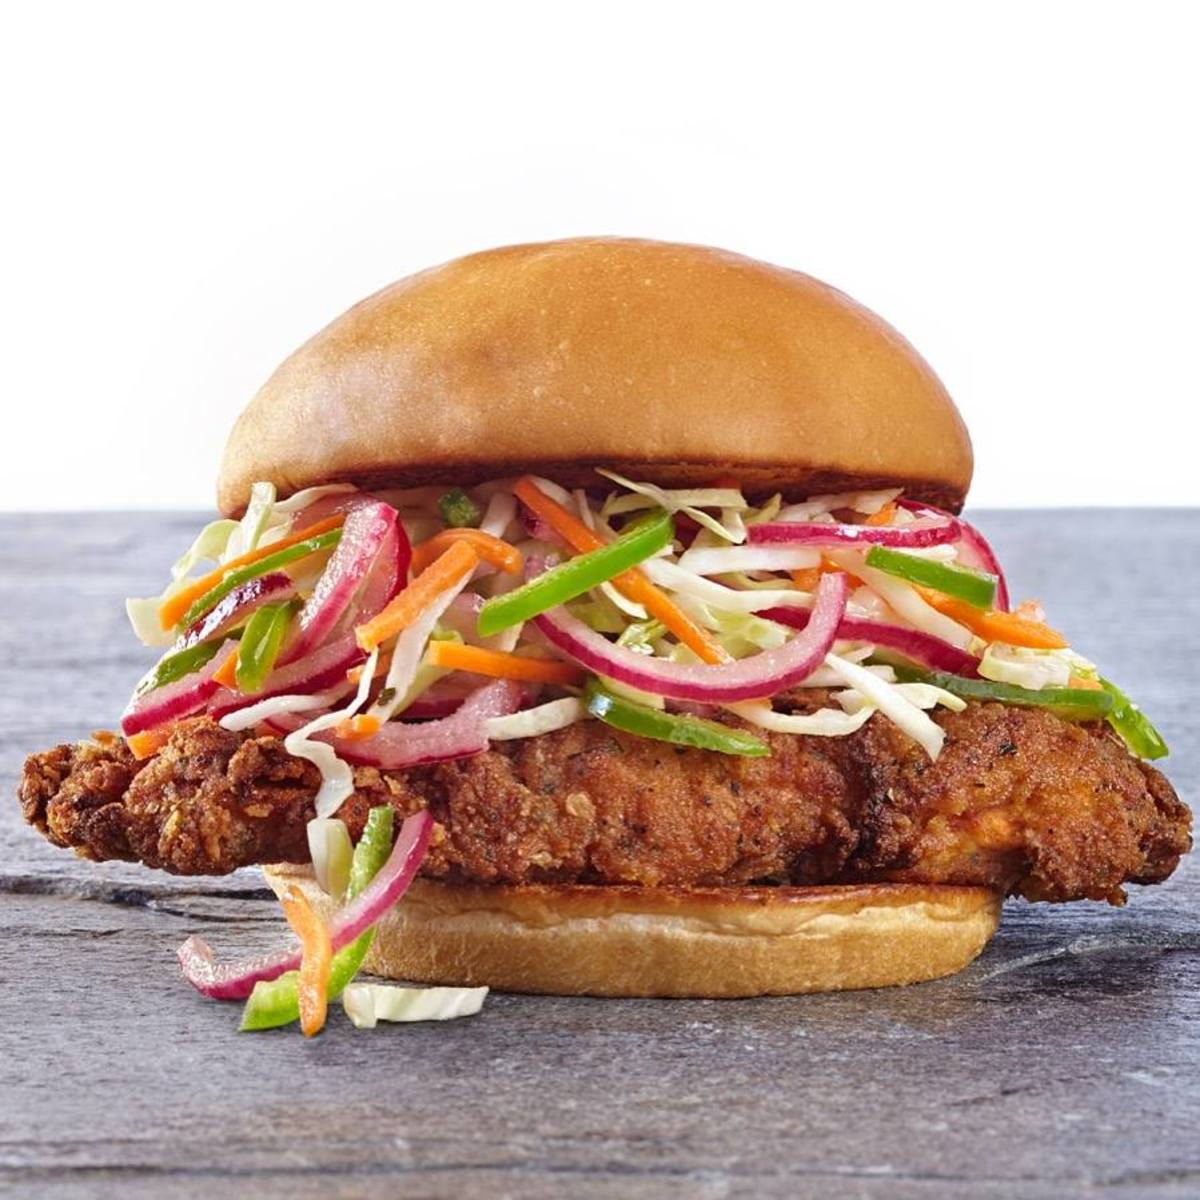 The Organic Coup is changing the fast food industry.